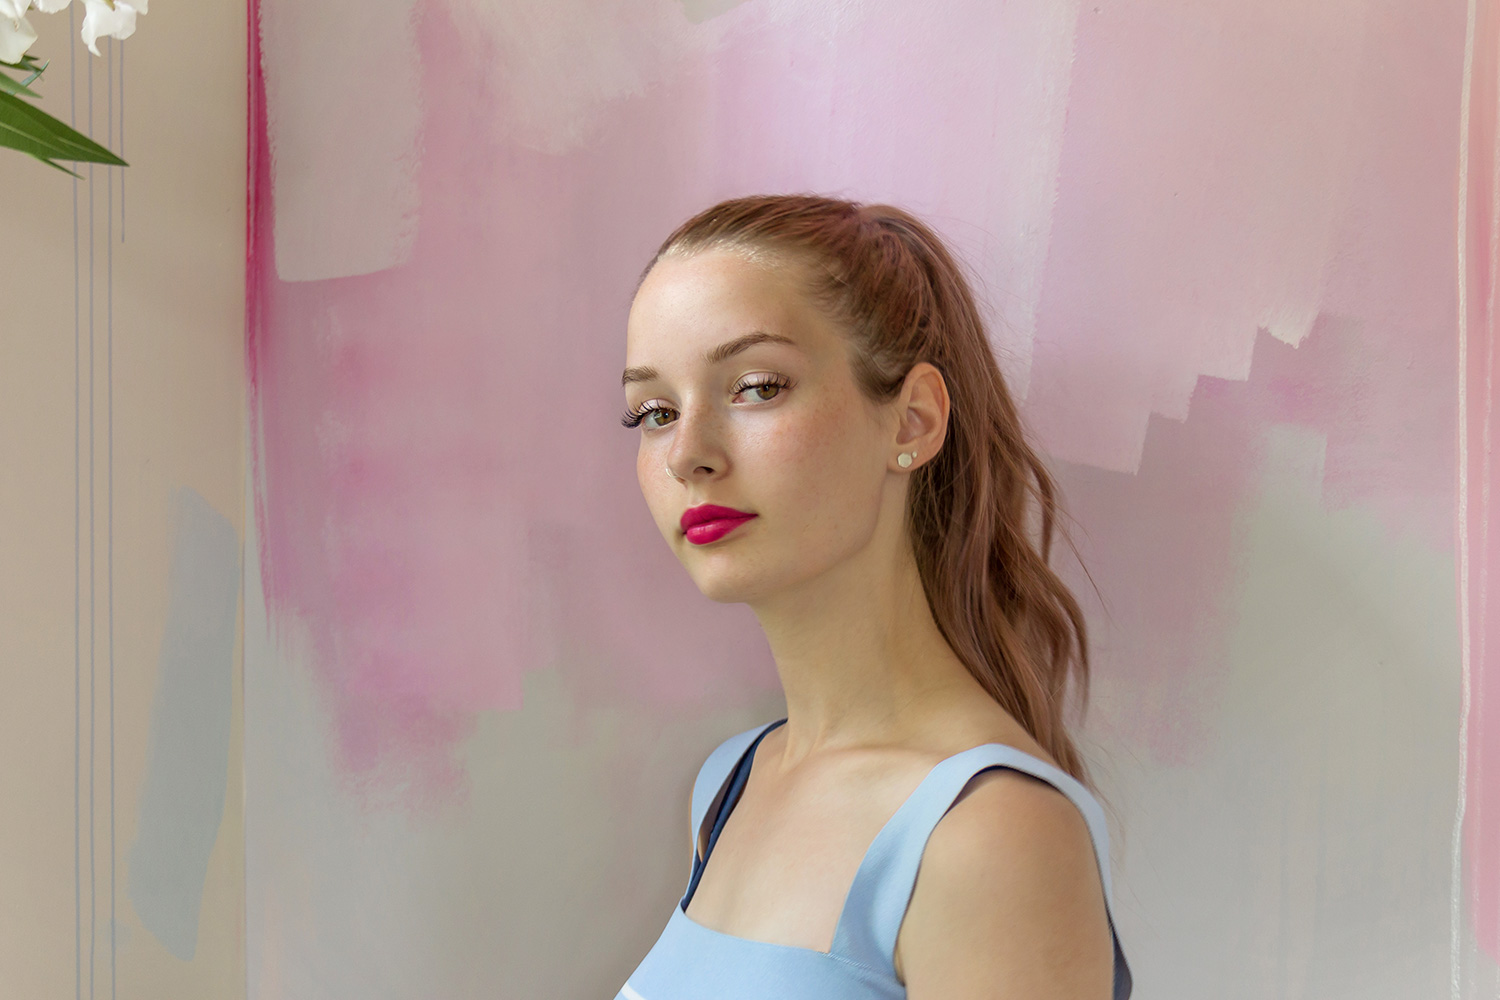 Striking portrait of young model standing in front of a modern hand painted backdrop. The model's bright pink lipstick pops against the soft colors of the abstract mural behind her.